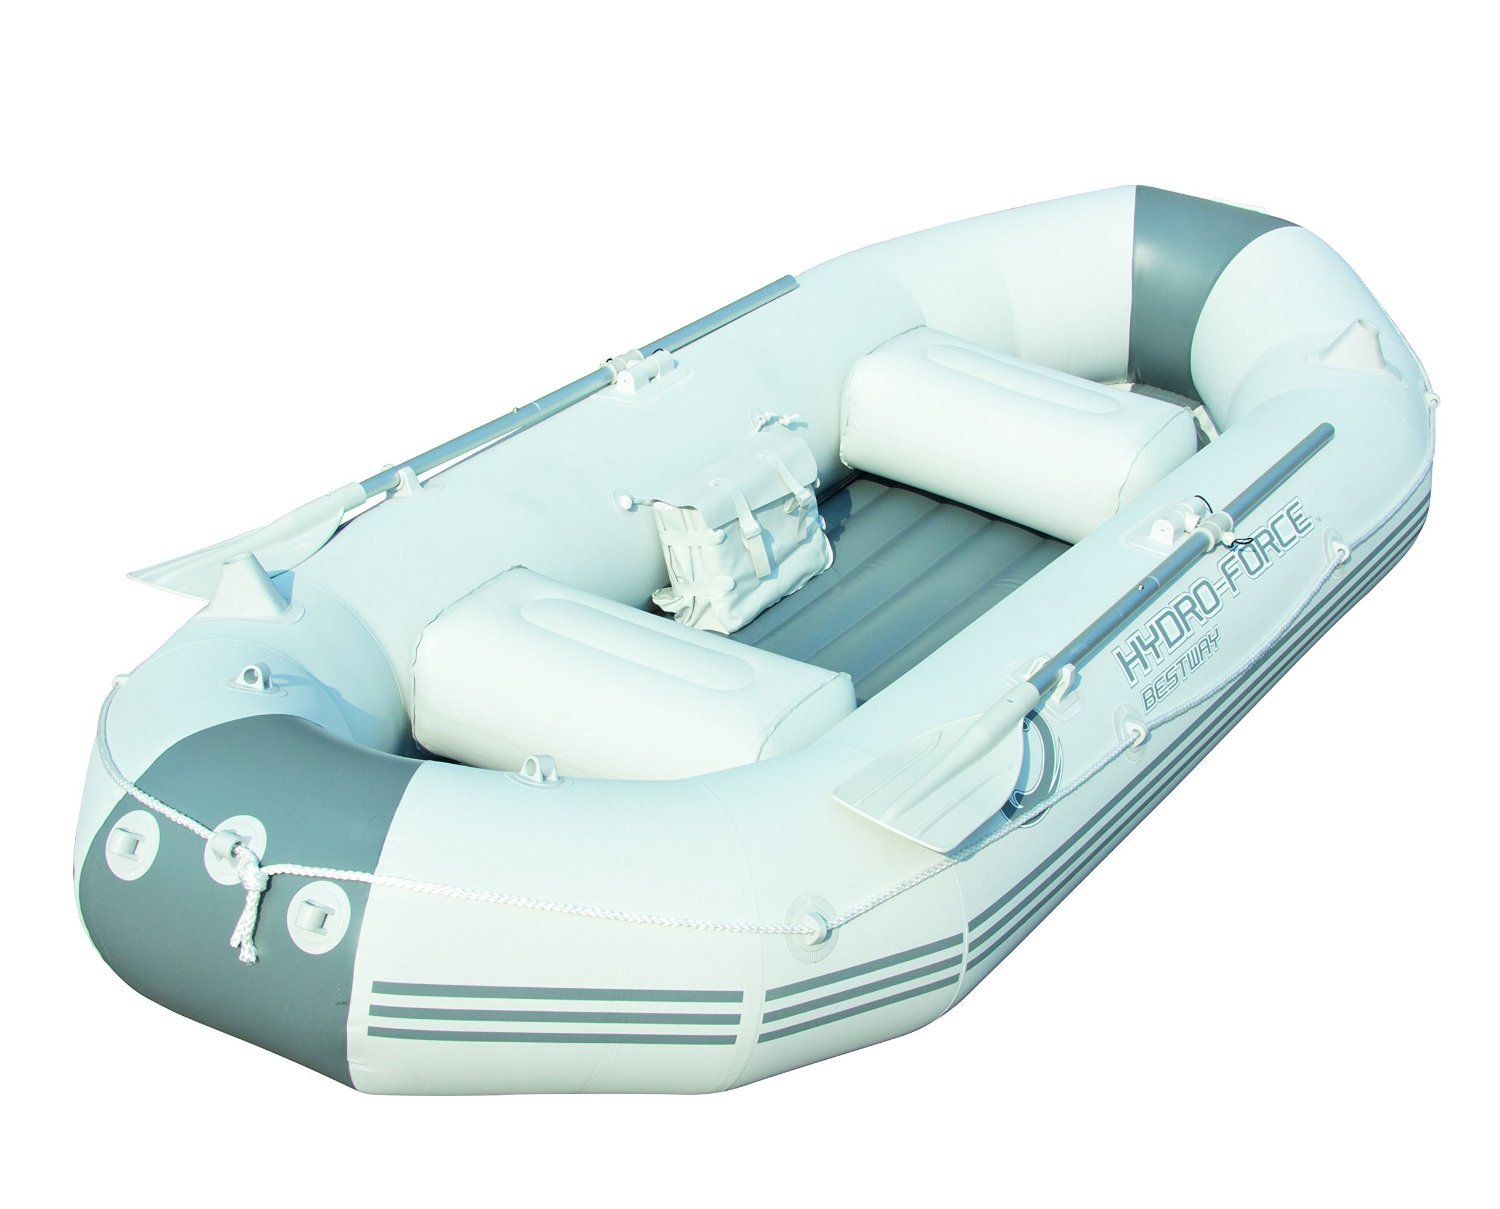 Bestway Boot Set Hydro Force Marine, weiß/ blau, 270 x 142 x 46 cm, 65044